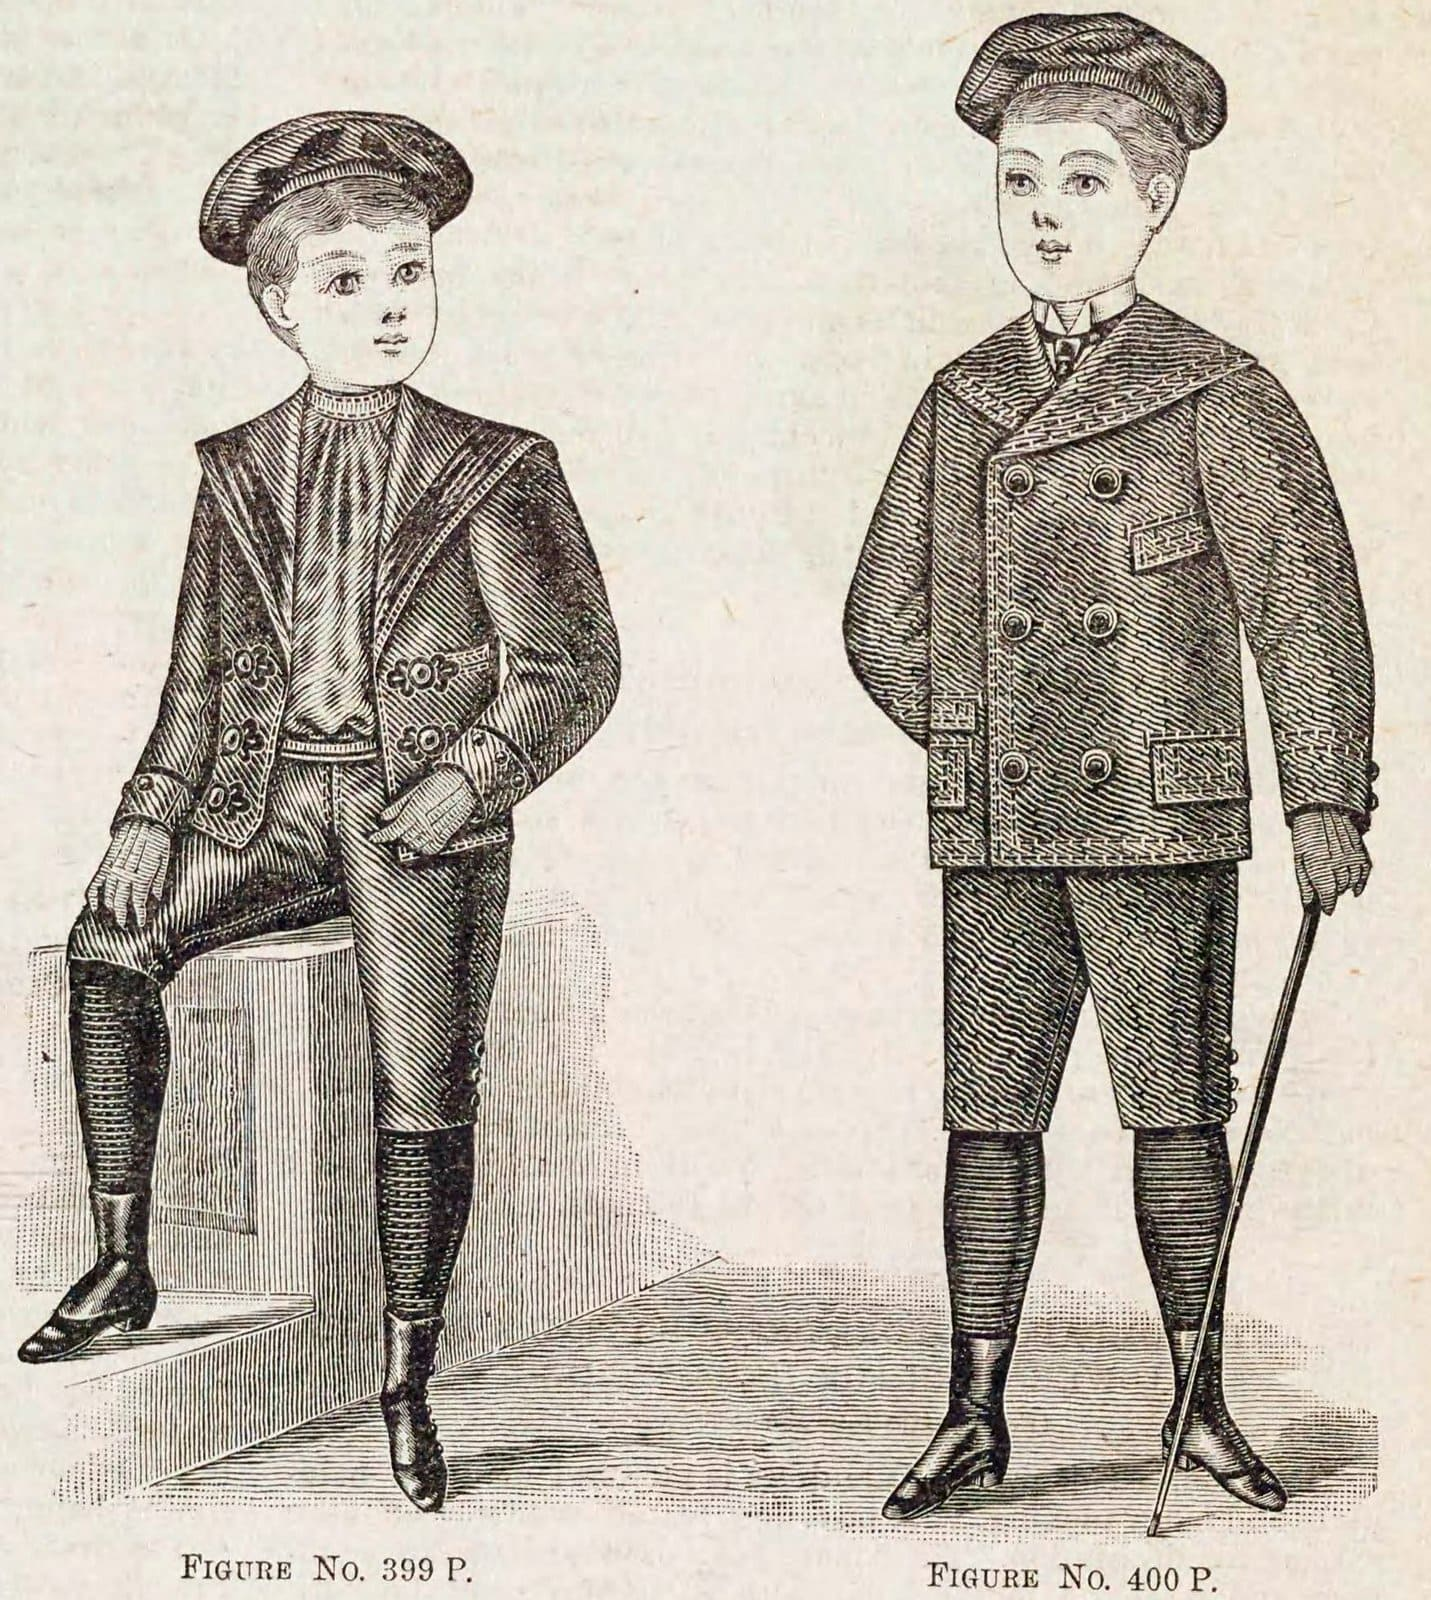 Christmas and winter fashions for Victorian-era boys in the late 1890s (1)